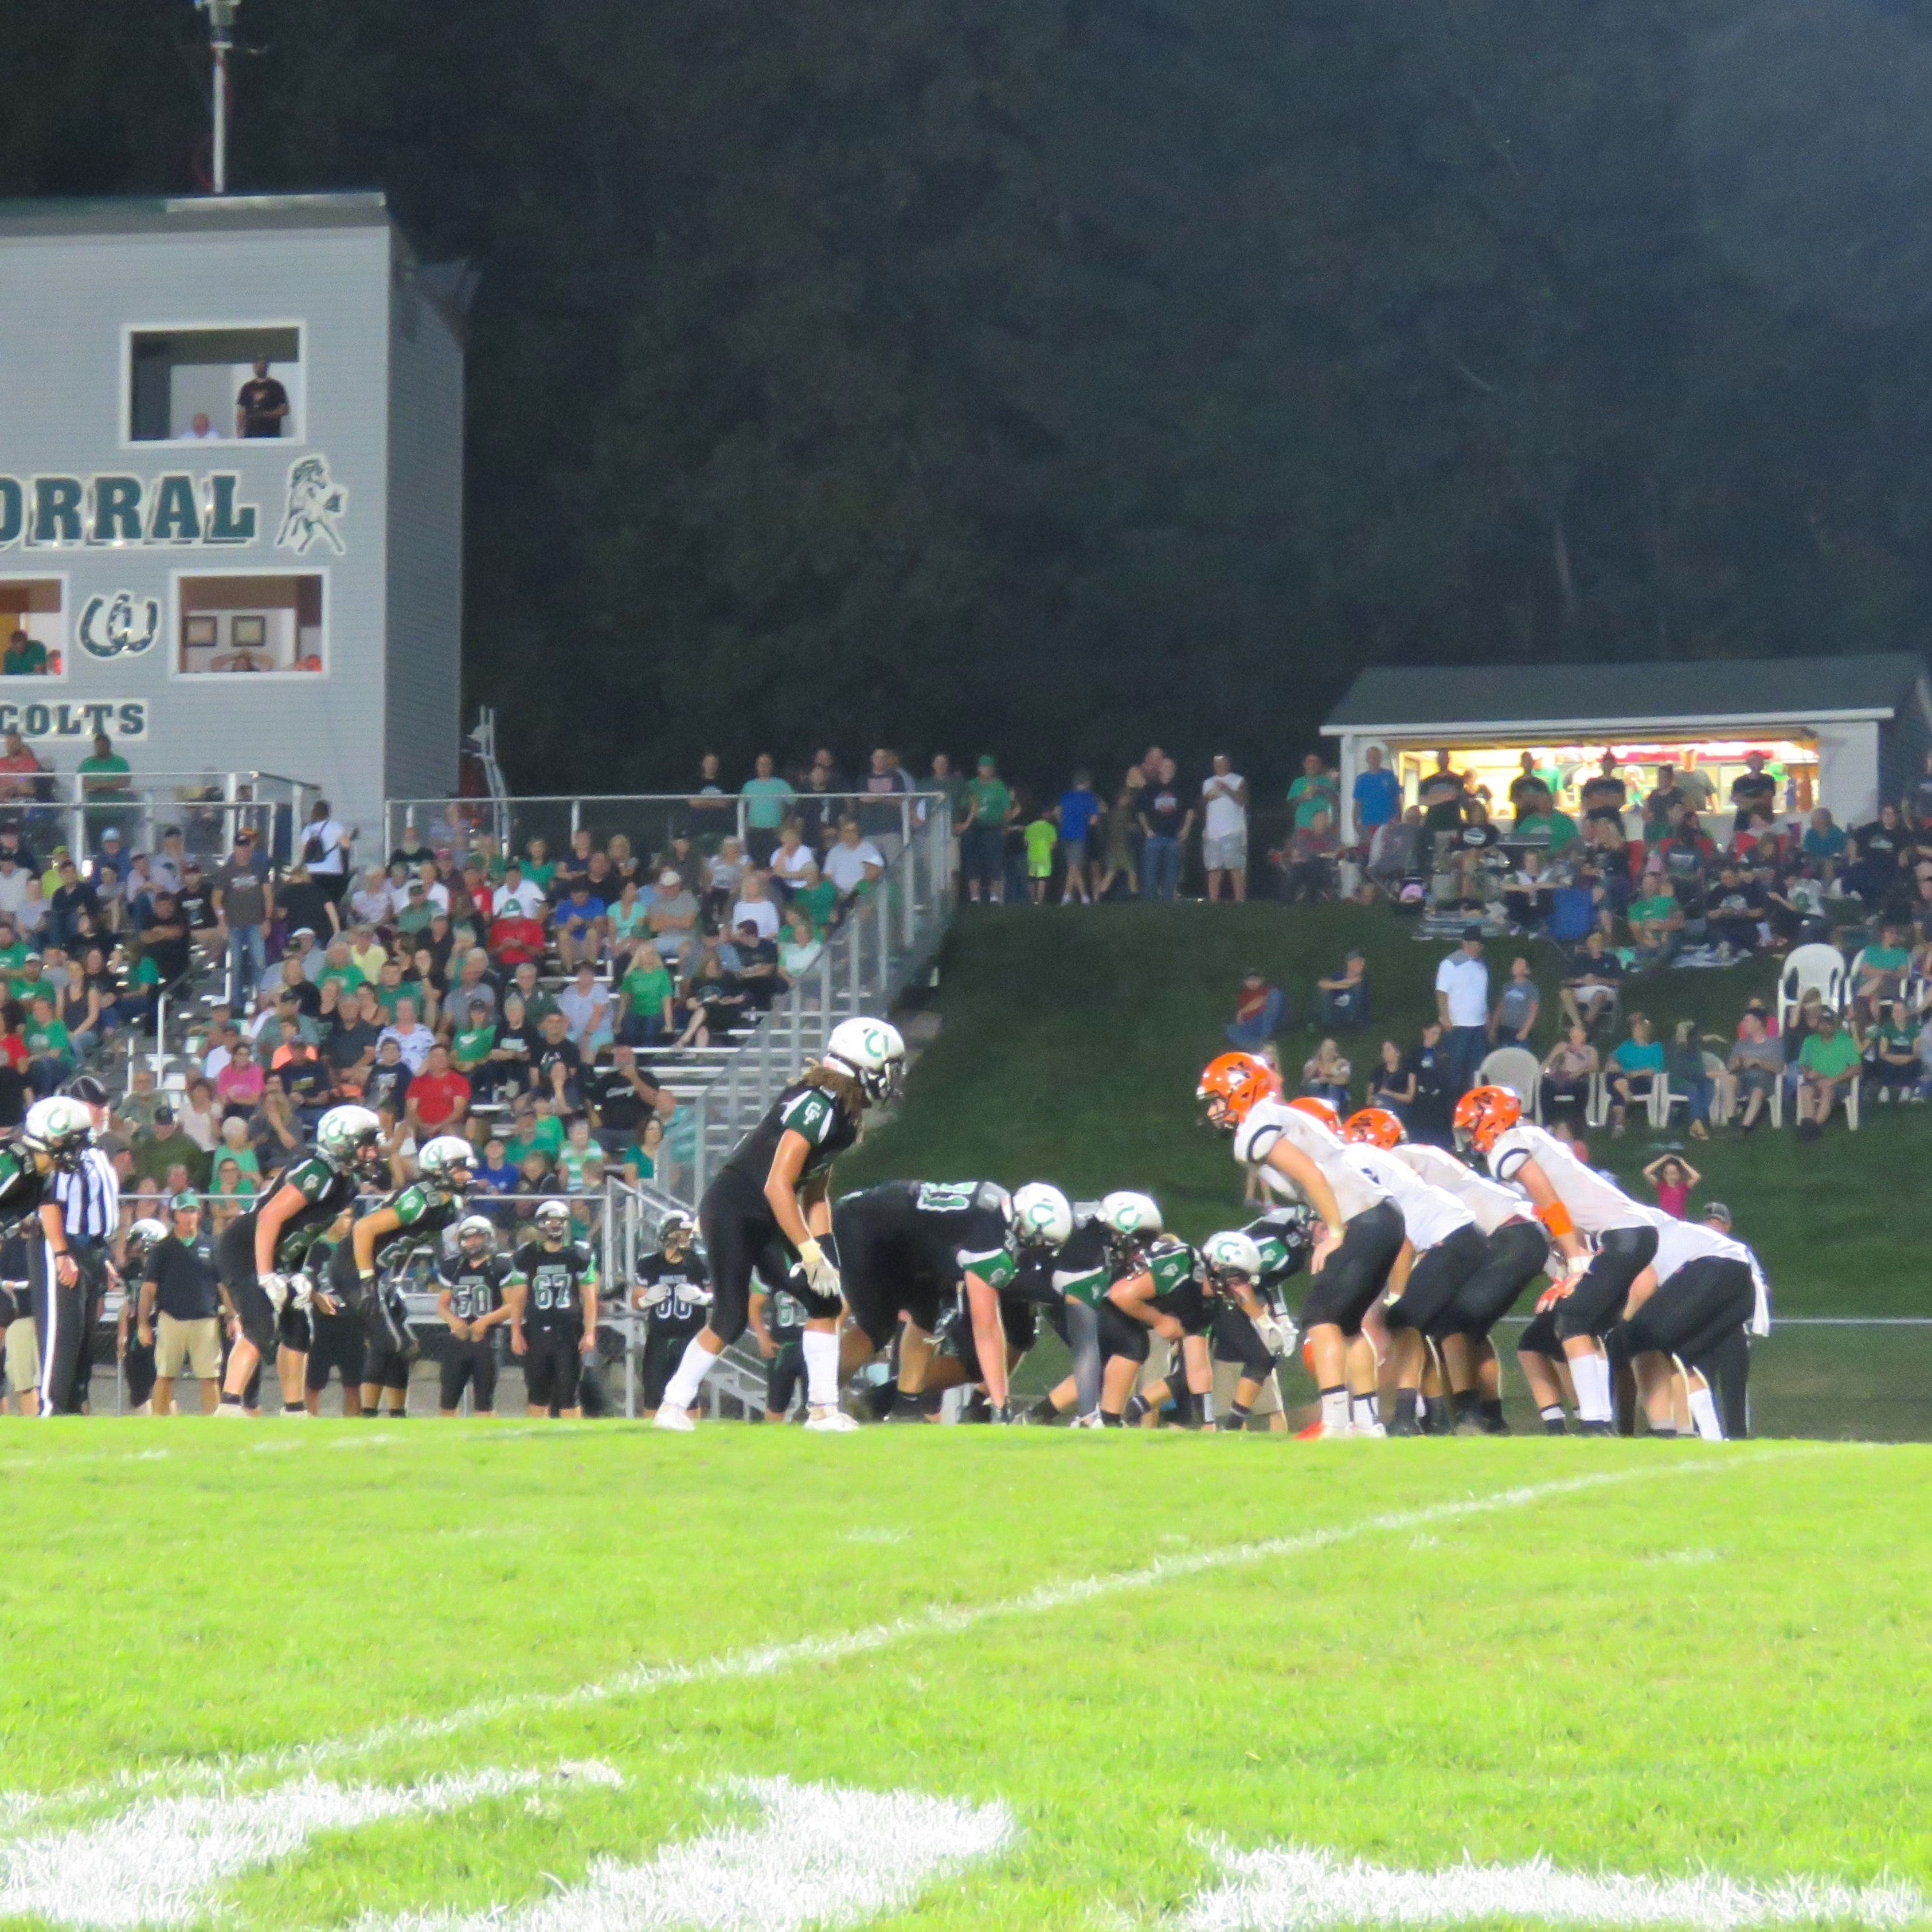 Clear Fork Colts impress in MOAC opening win over North Union